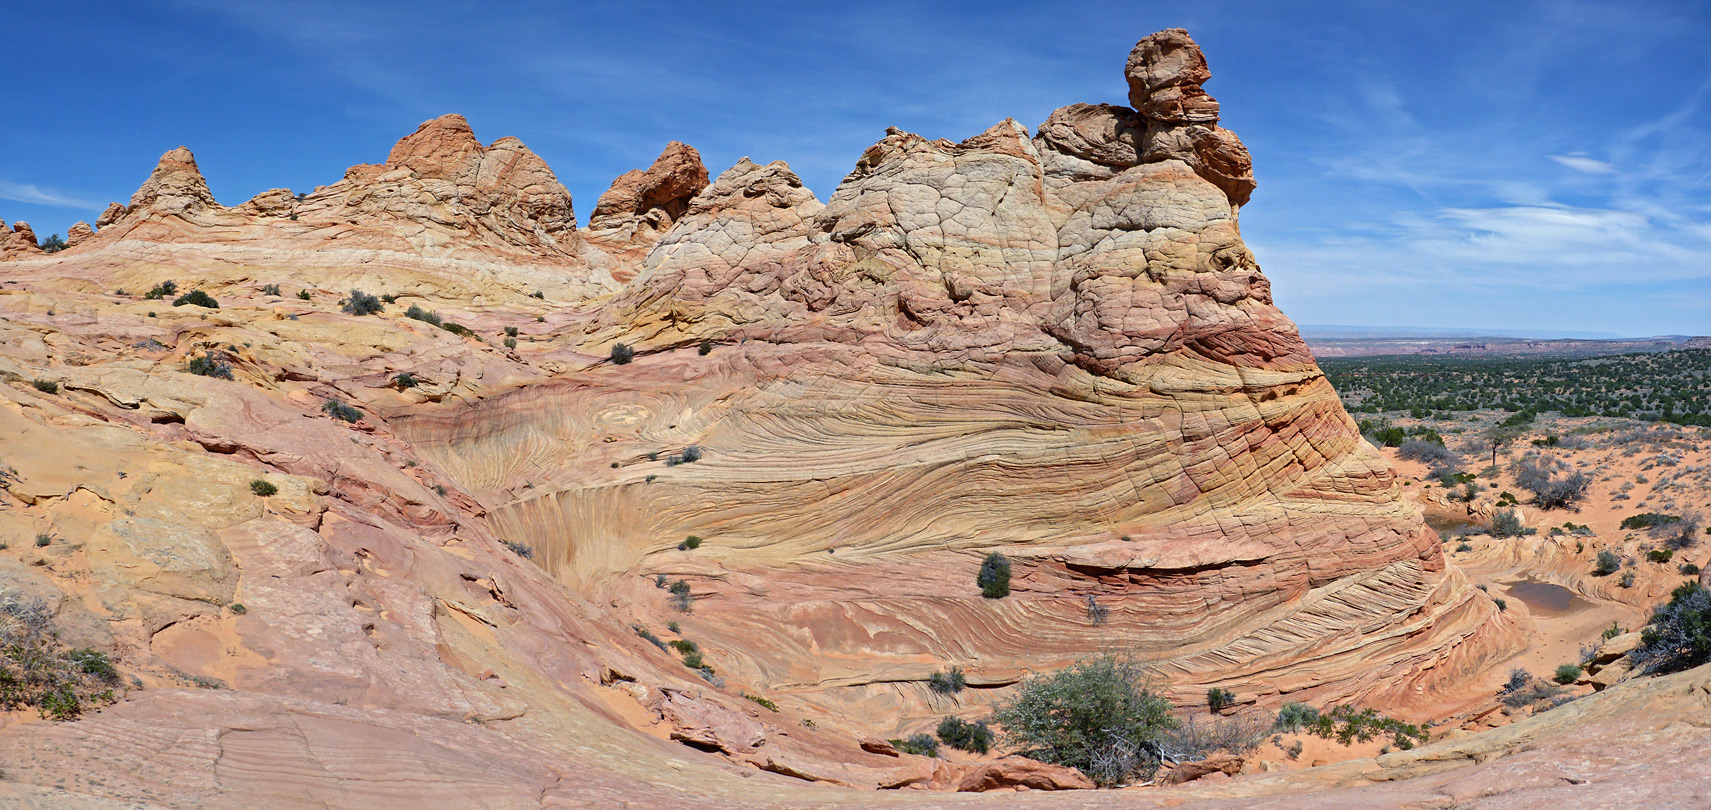 Multicolored sandstone